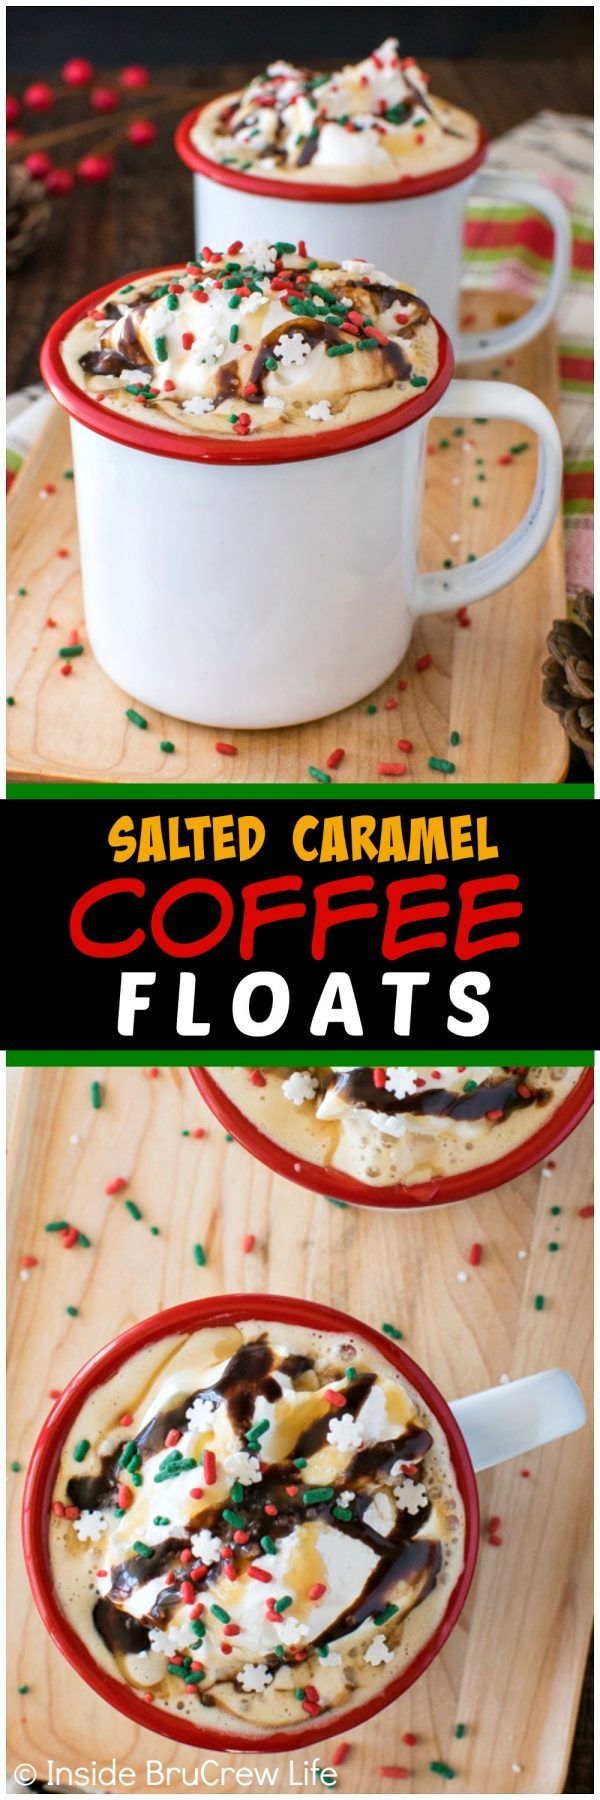 Salted Caramel Coffee Floats - coffee and gelato mixed together in a mug creates a delicious and easy coffee house drink. Great at home date night dessert recipe!